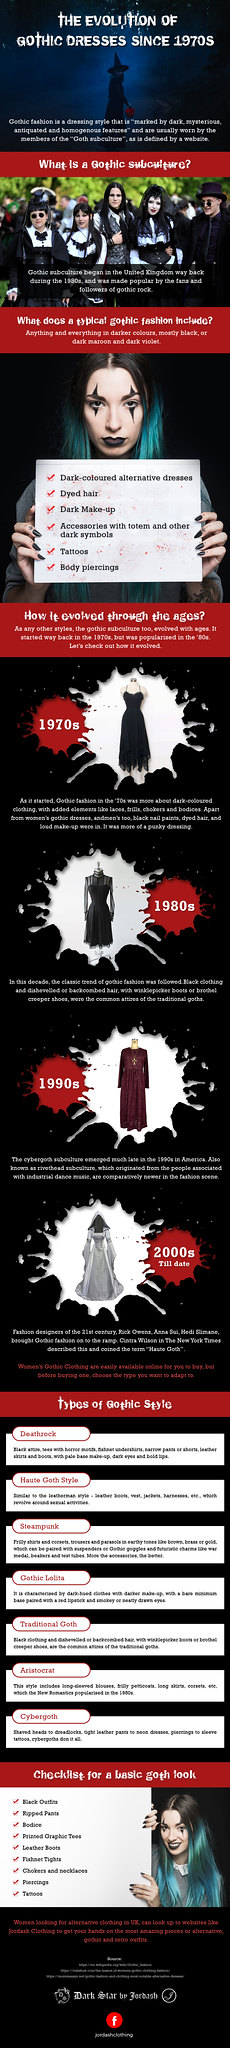 Know more About Womens Gothic Dresses and Its Origin {Infographic}